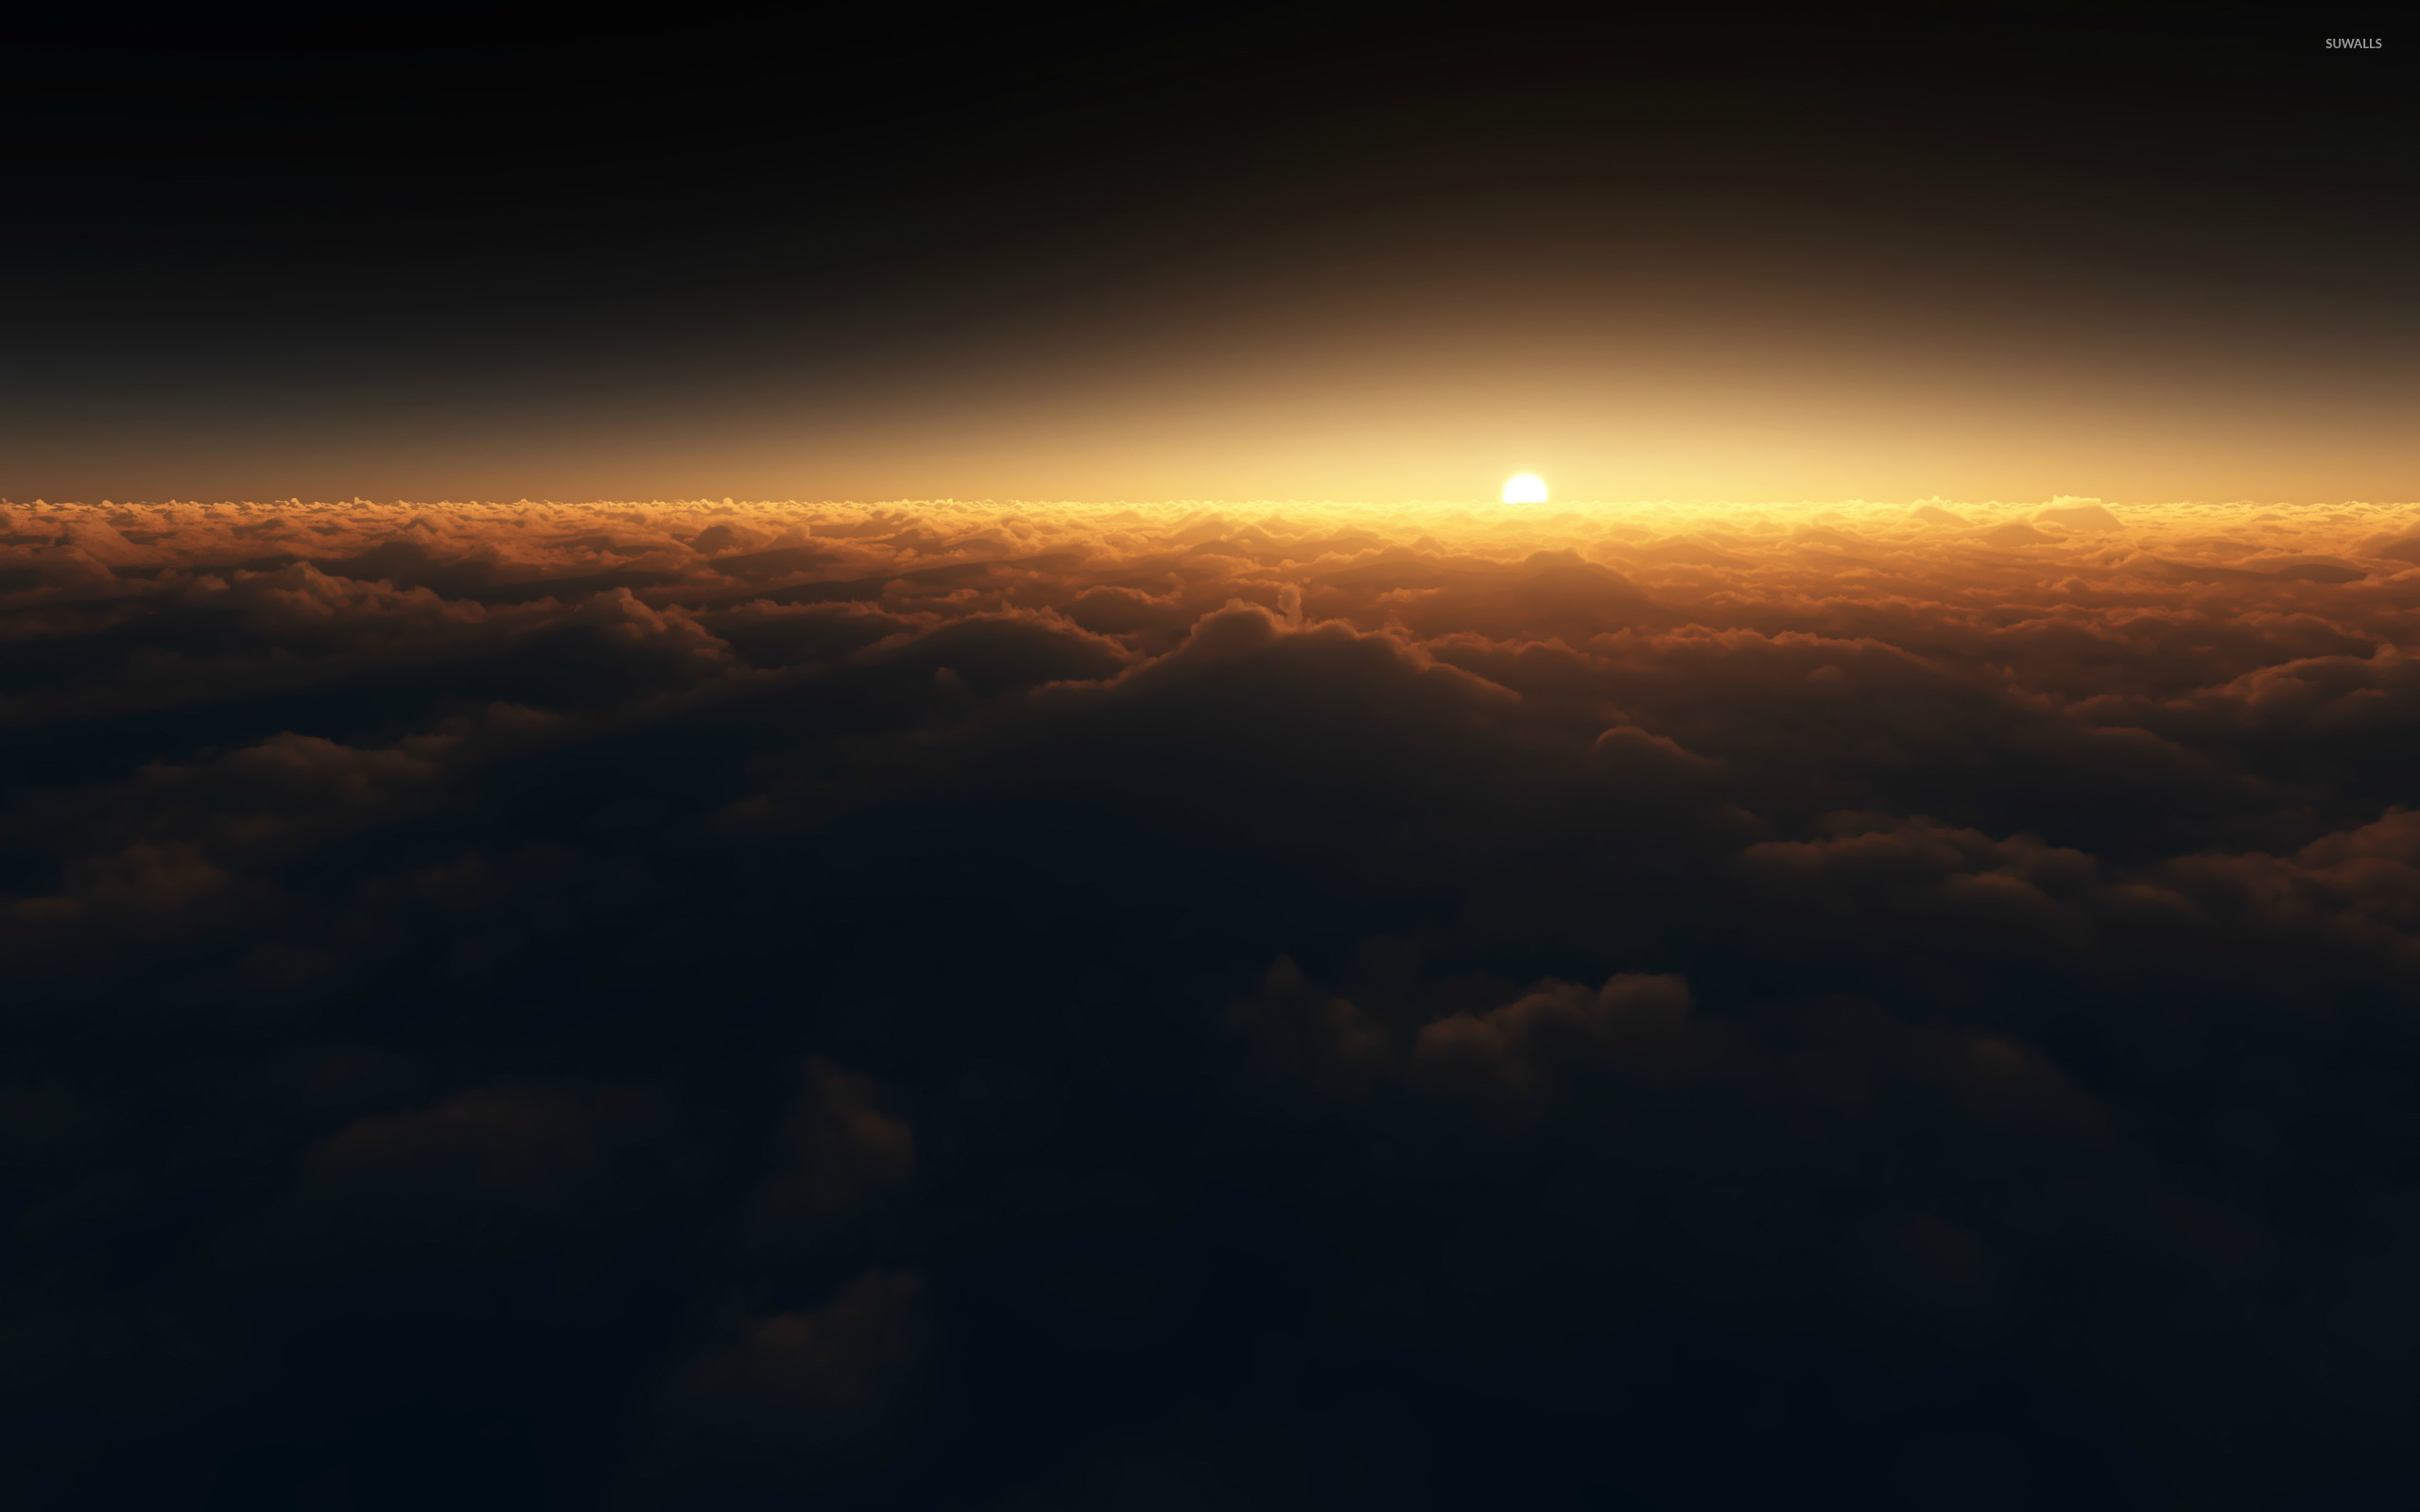 Sunset above the clouds wallpaper Photography wallpapers 14771